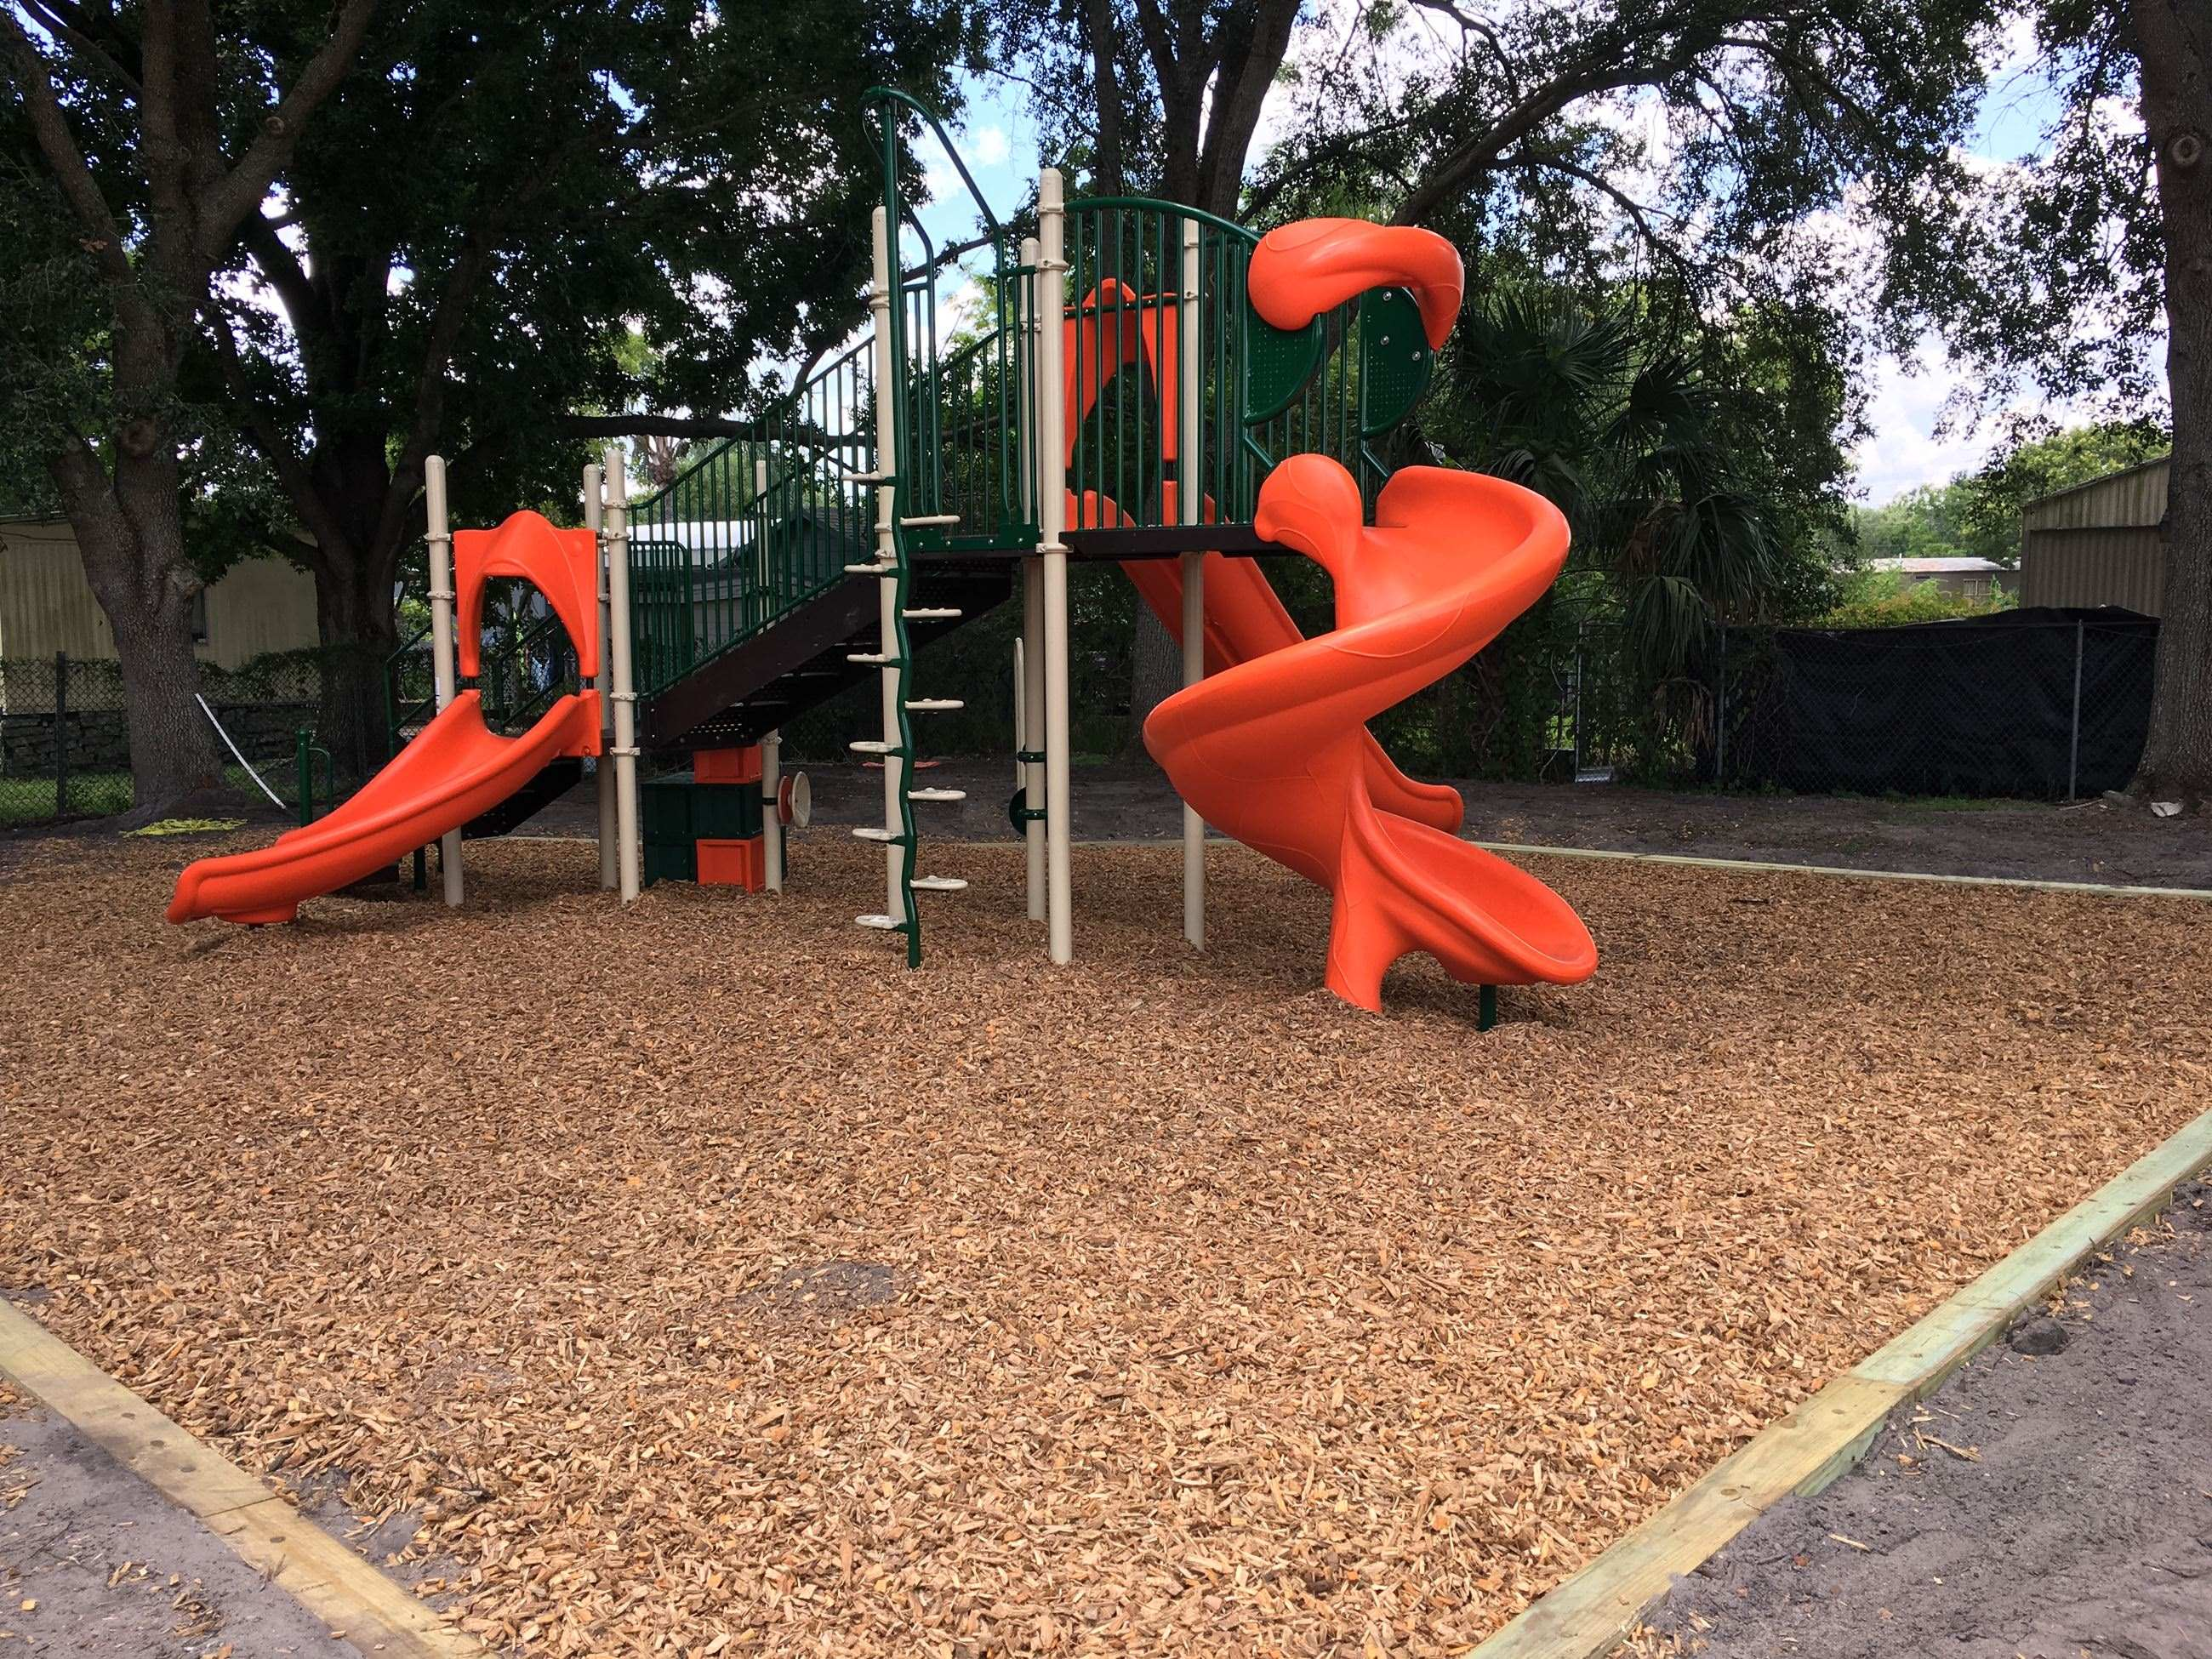 New Palm Dr Park Playground